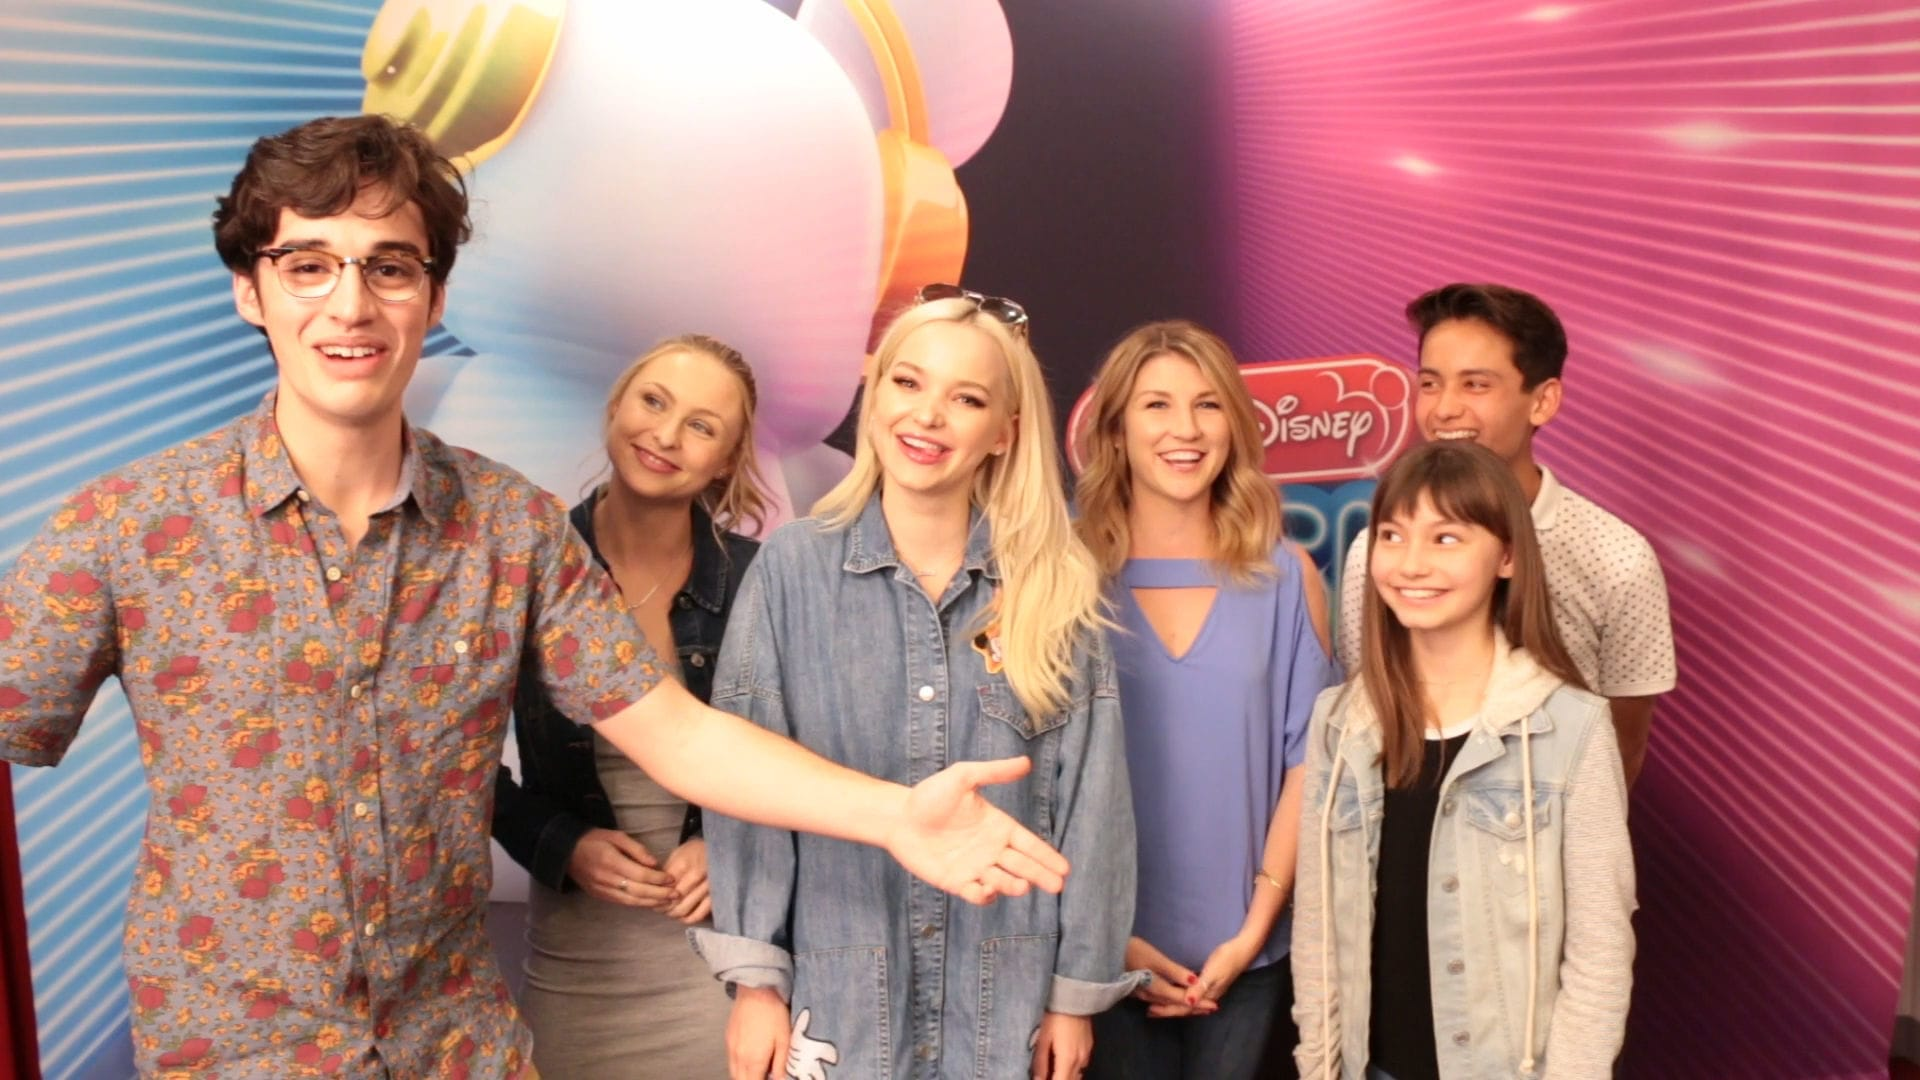 Liv and Maddie RDMA or Dare | Radio Disney Music Awards